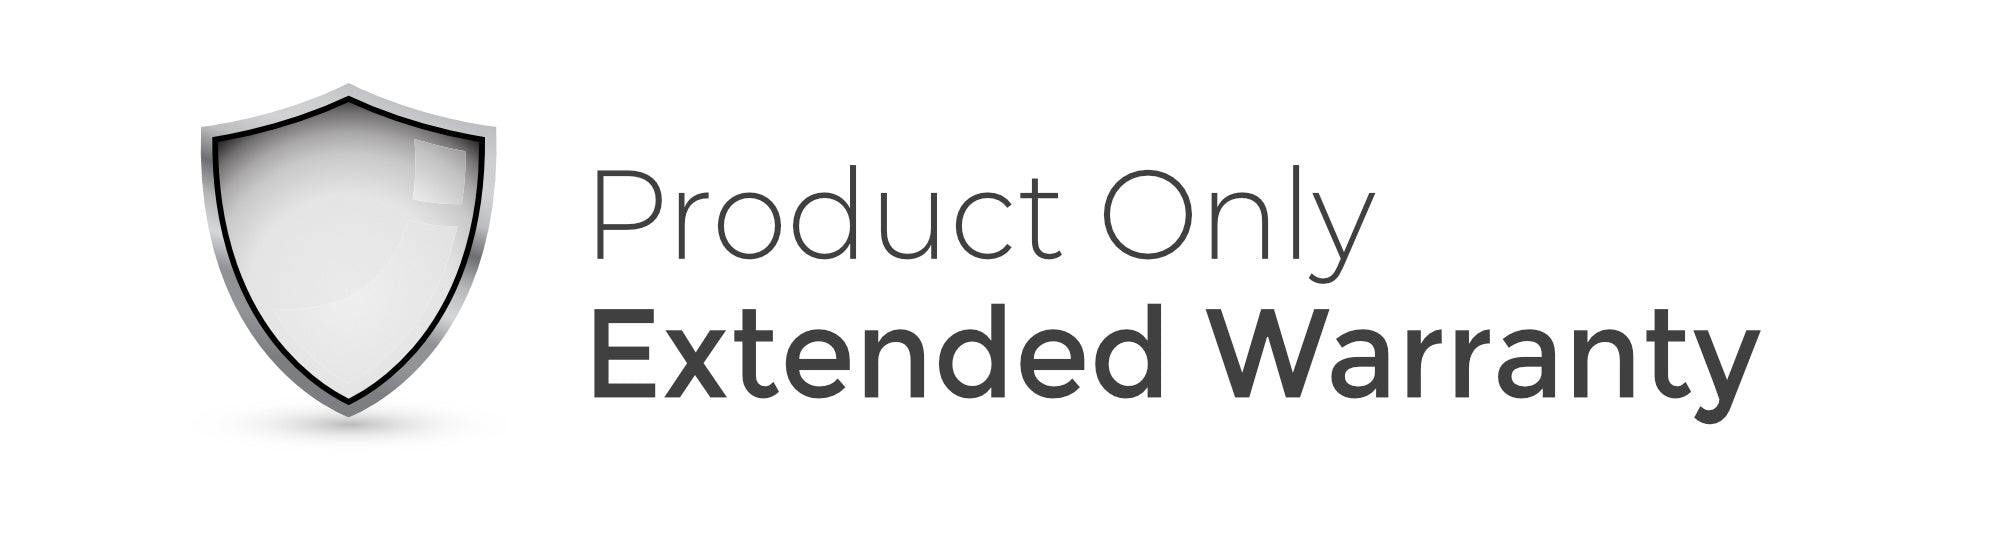 Product Only - Extended Warranty (ML Duo+) - Commtel Shop